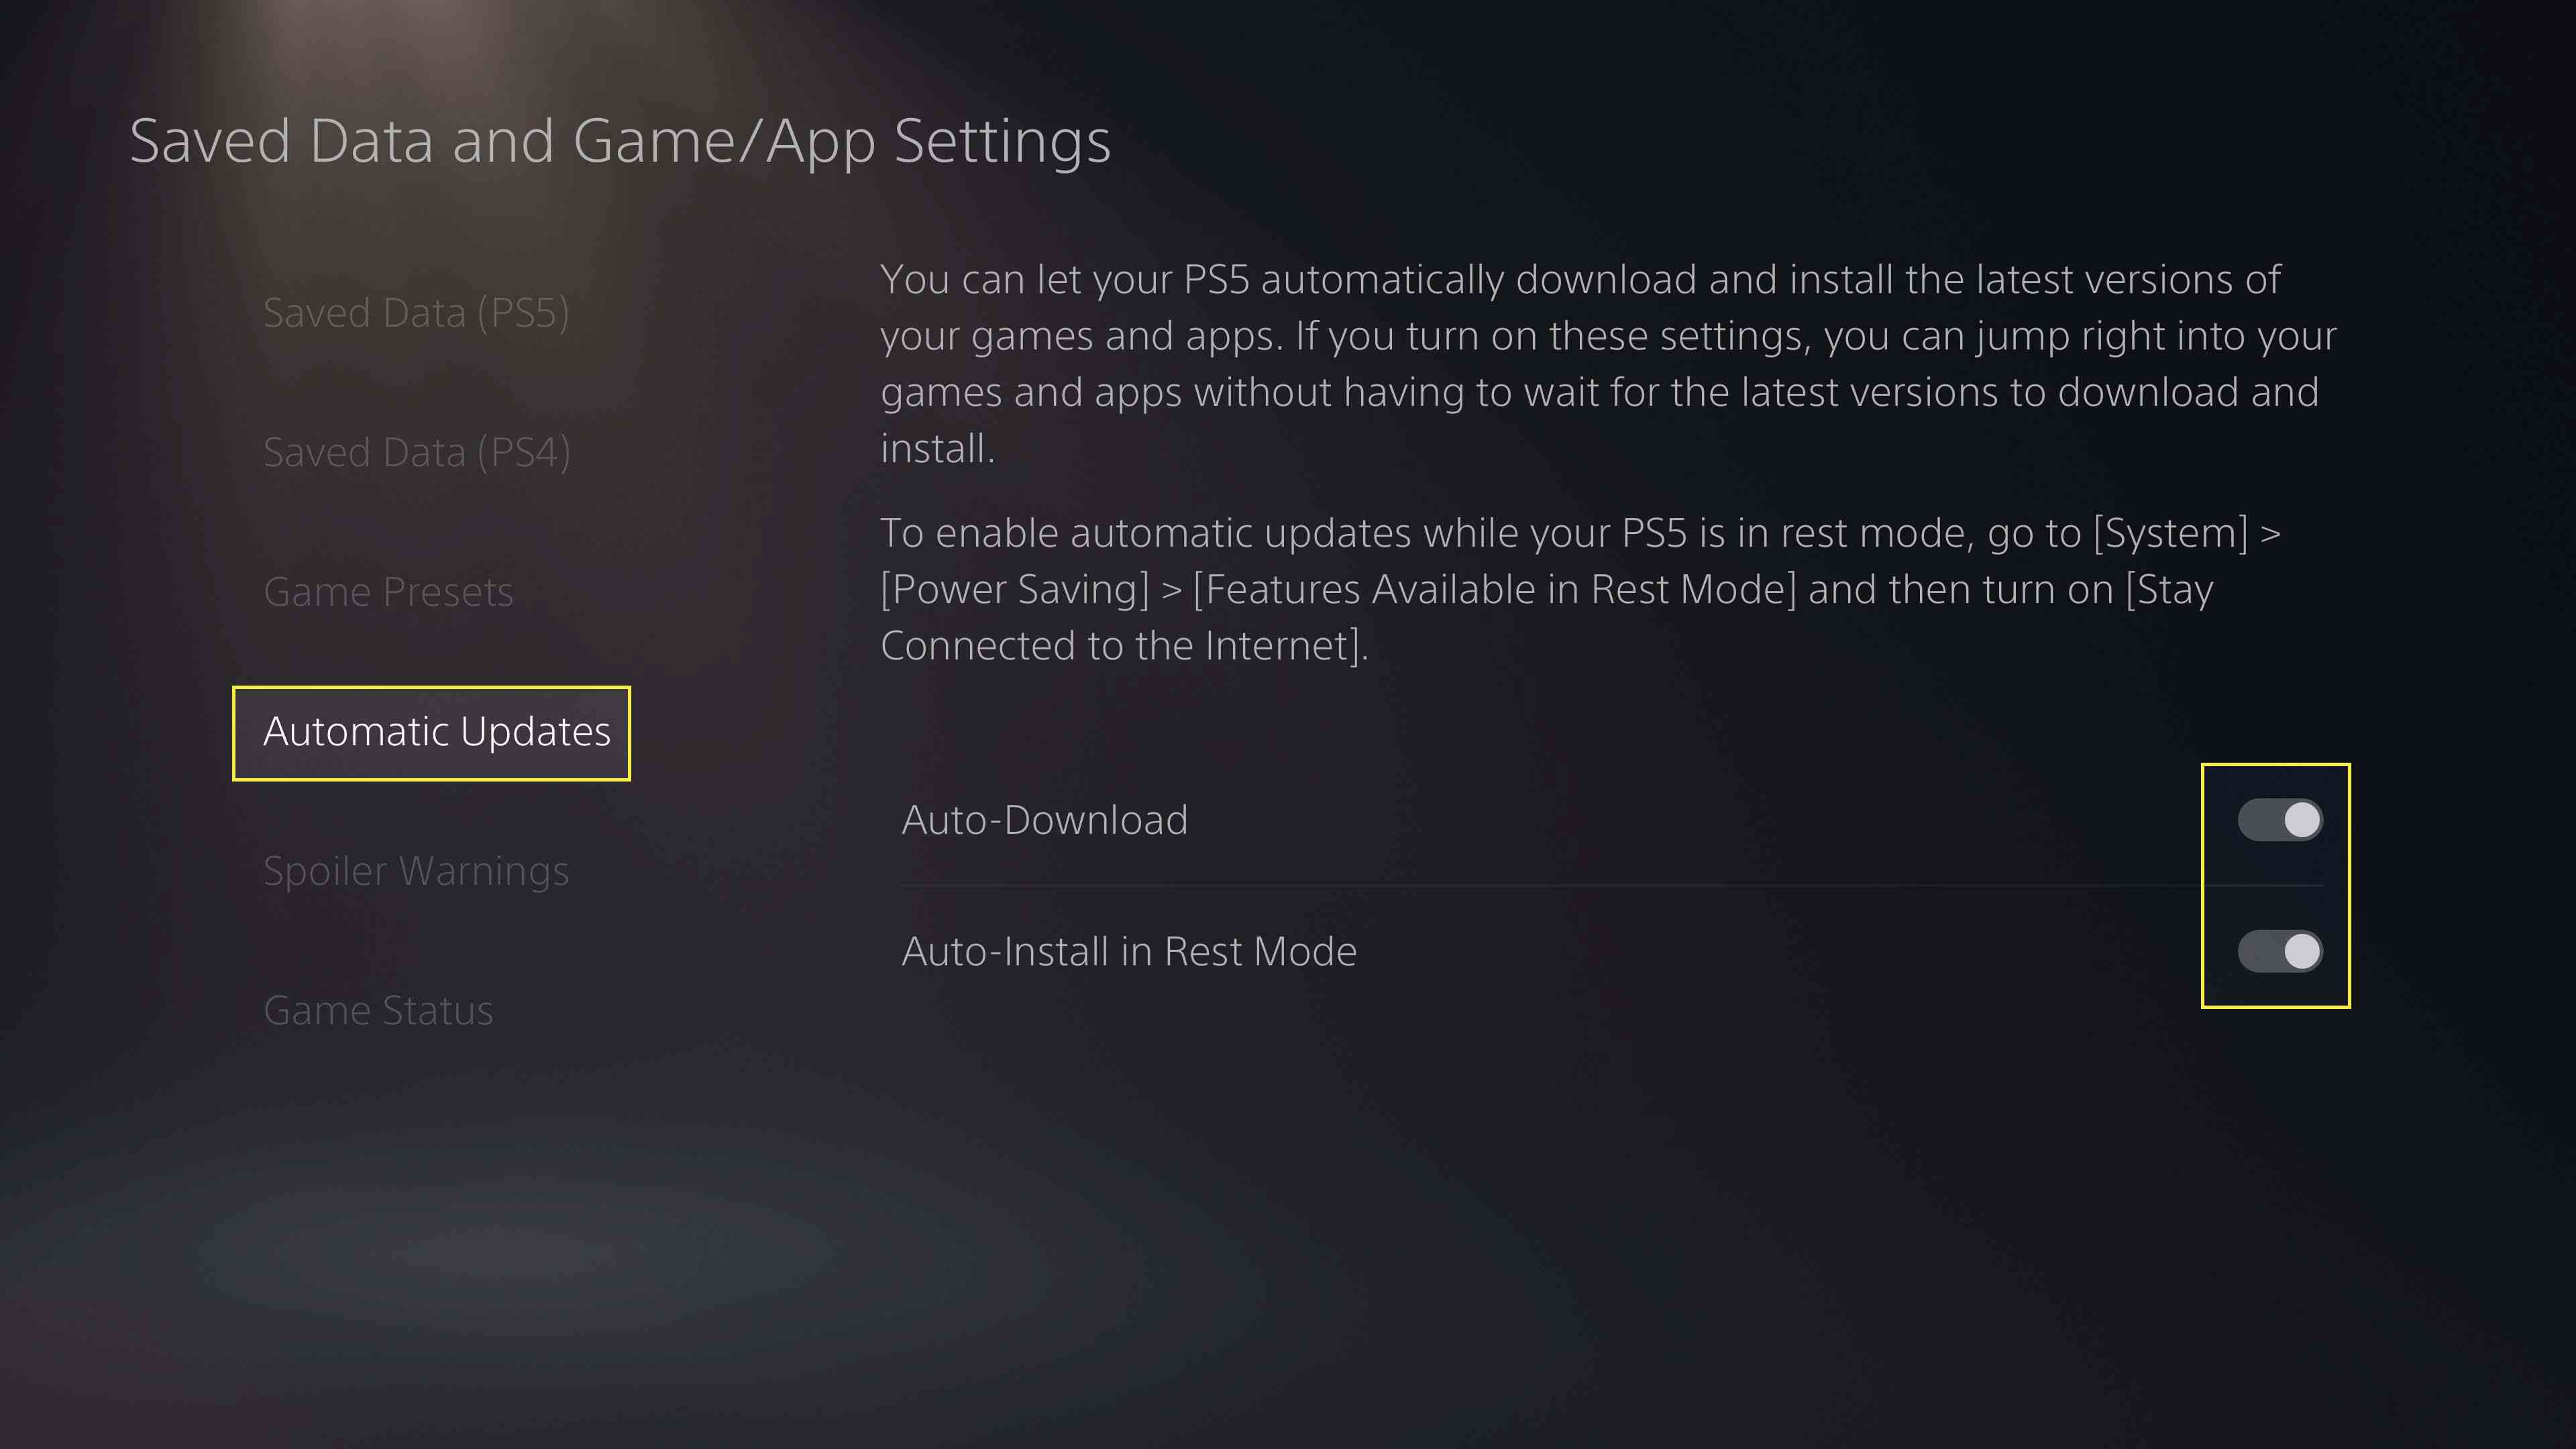 Turning off Auto-Download and Auto-Install in Rest Mode on PS5.